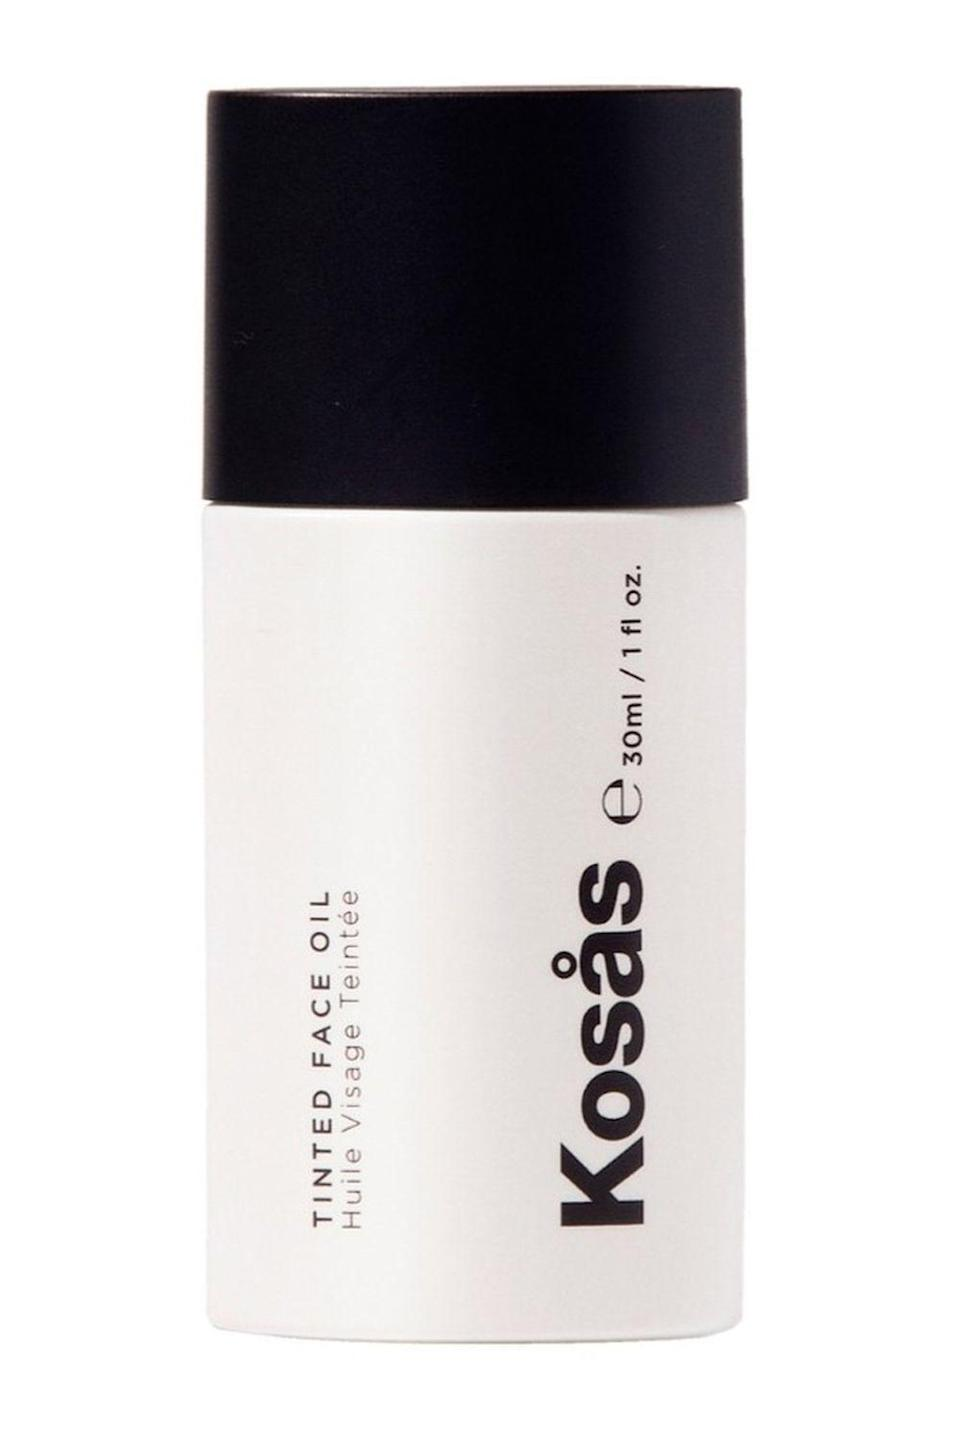 "<p><strong>Kosas</strong></p><p>sephora.com</p><p><strong>$42.00</strong></p><p><a href=""https://go.redirectingat.com?id=74968X1596630&url=https%3A%2F%2Fwww.sephora.com%2Fproduct%2Ftinted-face-oil-P441884&sref=https%3A%2F%2Fwww.cosmopolitan.com%2Fstyle-beauty%2Fbeauty%2Fg33351245%2Fbest-natural-foundations%2F"" rel=""nofollow noopener"" target=""_blank"" data-ylk=""slk:Shop Now"" class=""link rapid-noclick-resp"">Shop Now</a></p><p>Part face oil, part <a href=""https://www.cosmopolitan.com/style-beauty/beauty/g19610163/best-foundation-oily-skin/"" rel=""nofollow noopener"" target=""_blank"" data-ylk=""slk:foundation"" class=""link rapid-noclick-resp"">foundation</a>, this bb is loved by editors and makeup artists for it's ability to cover up redness, breakouts, and dark marks while still letting your skin look like real skin. <strong>Made with just 15 natural ingredients</strong> (most of which are nourishing plant oils), a few drops soothe, plump, and nourish your skin.</p>"